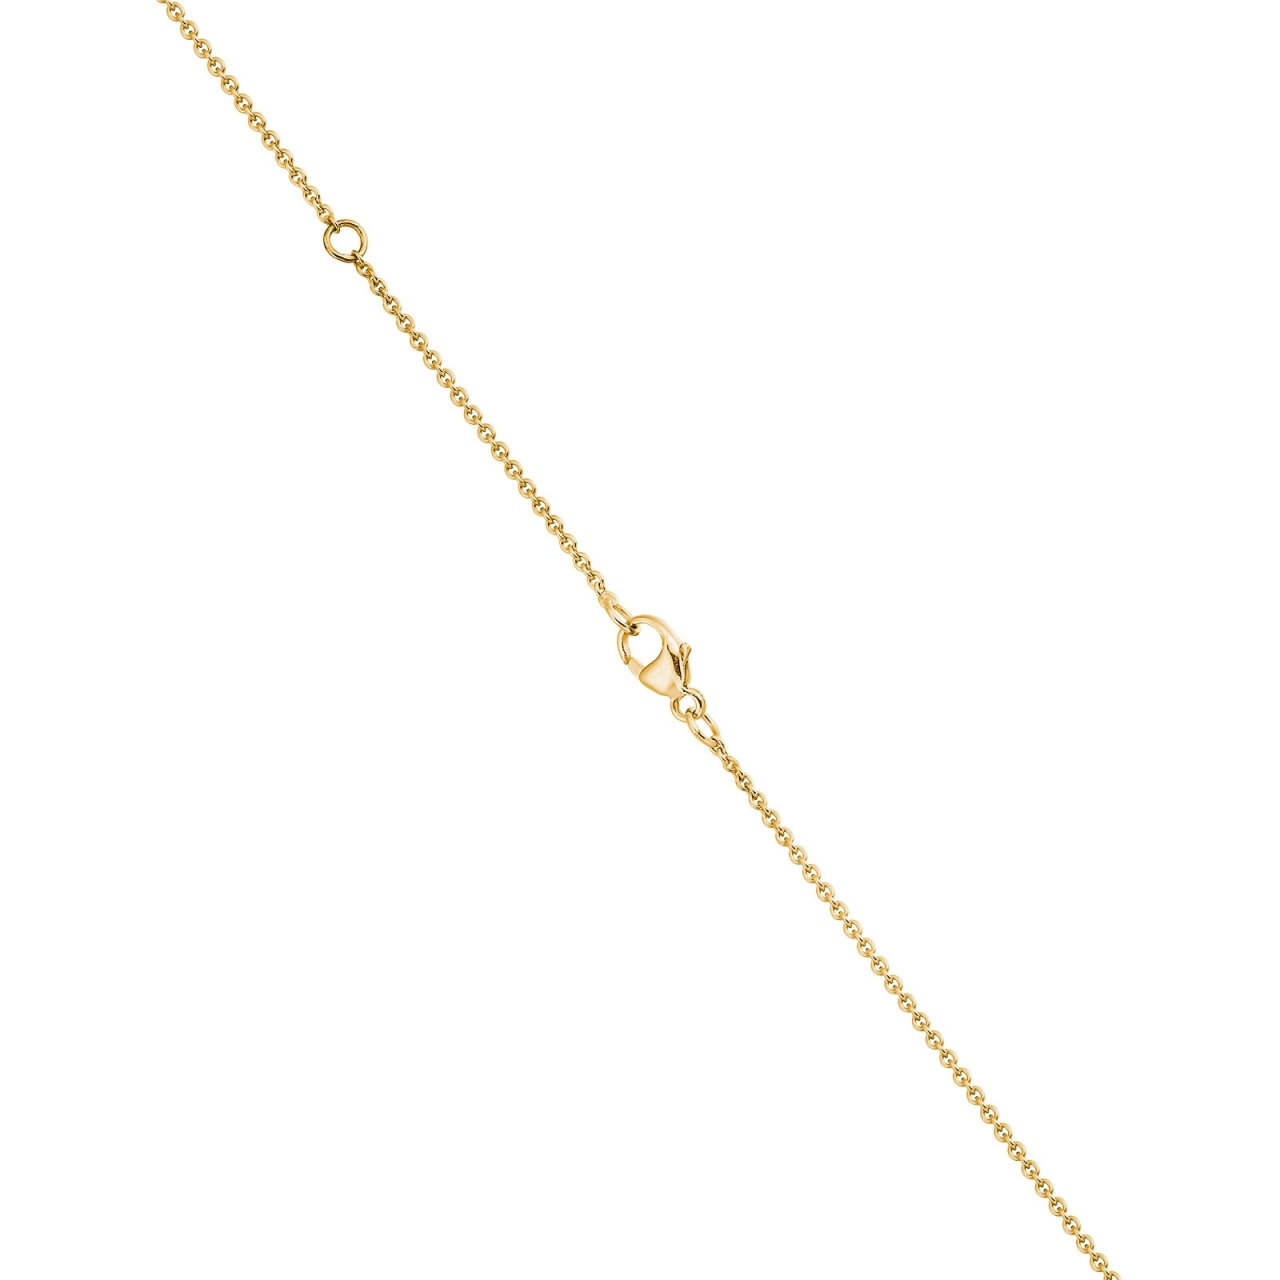 Astral Cluster Pendant in Yellow Gold-PEDIYG1004-1